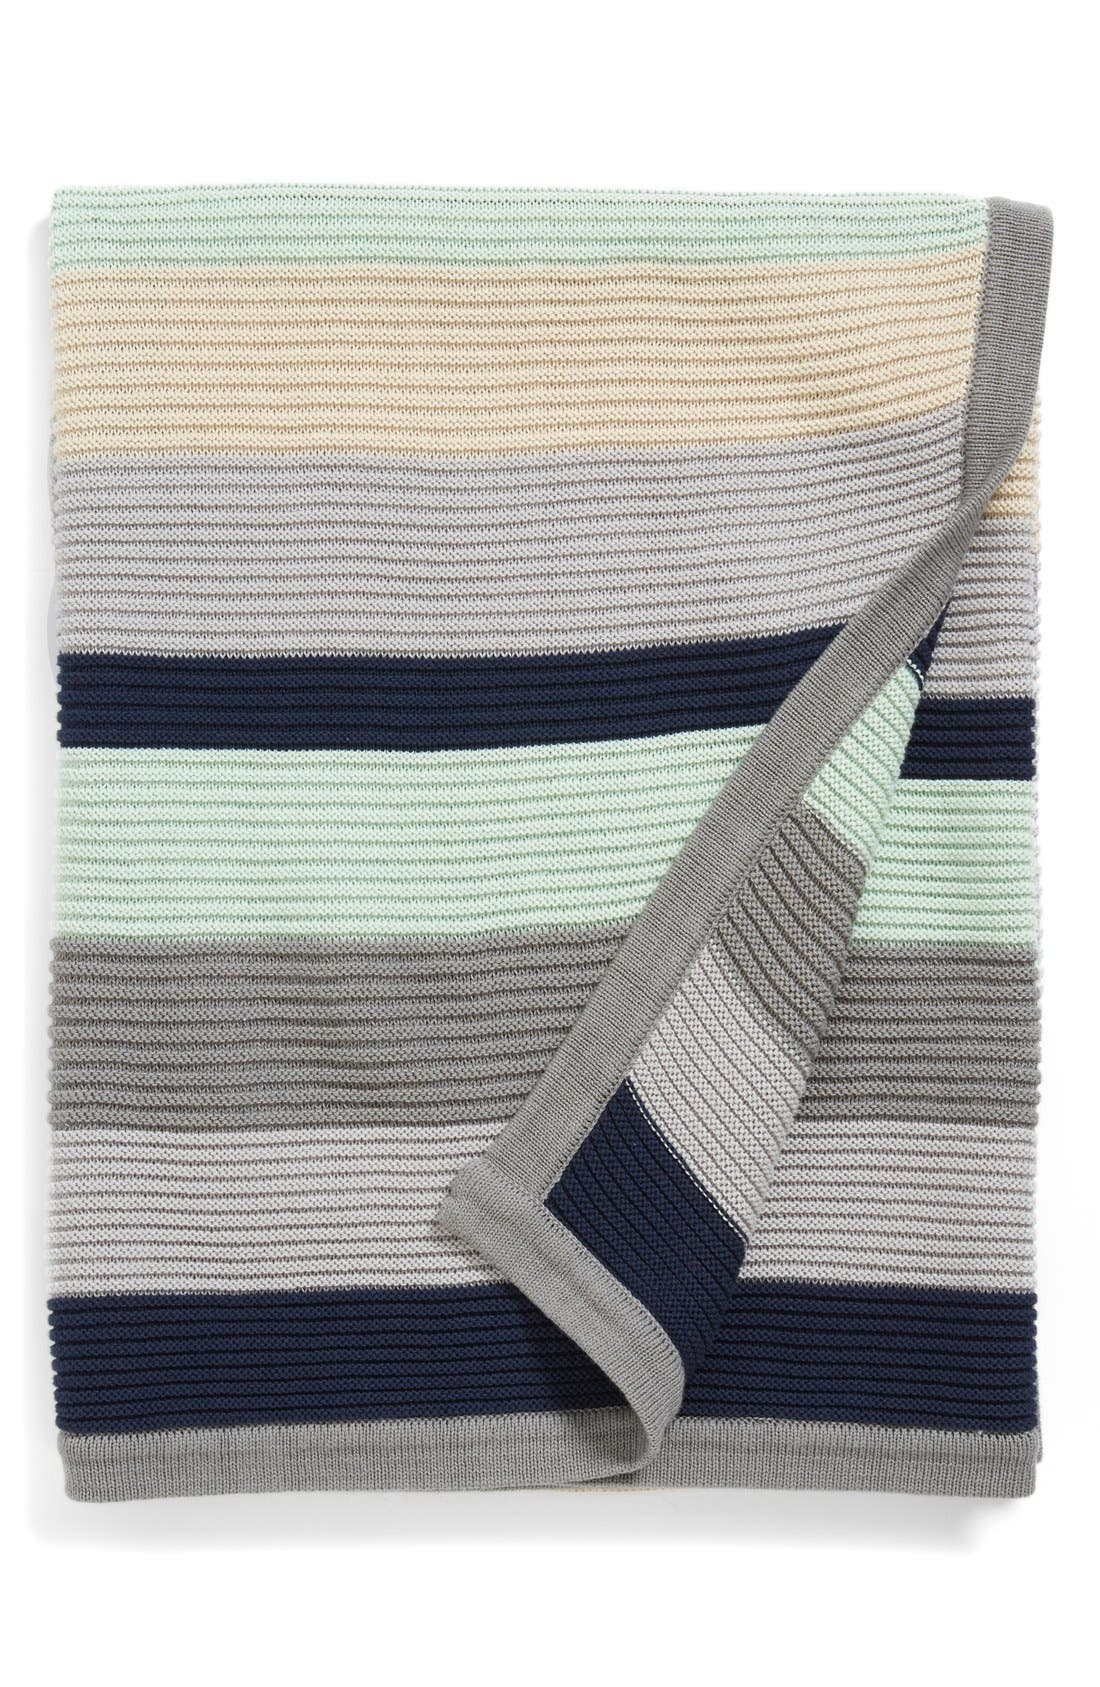 Alternate Image 1 Selected - Nordstrom at Home 'Spirit' Throw